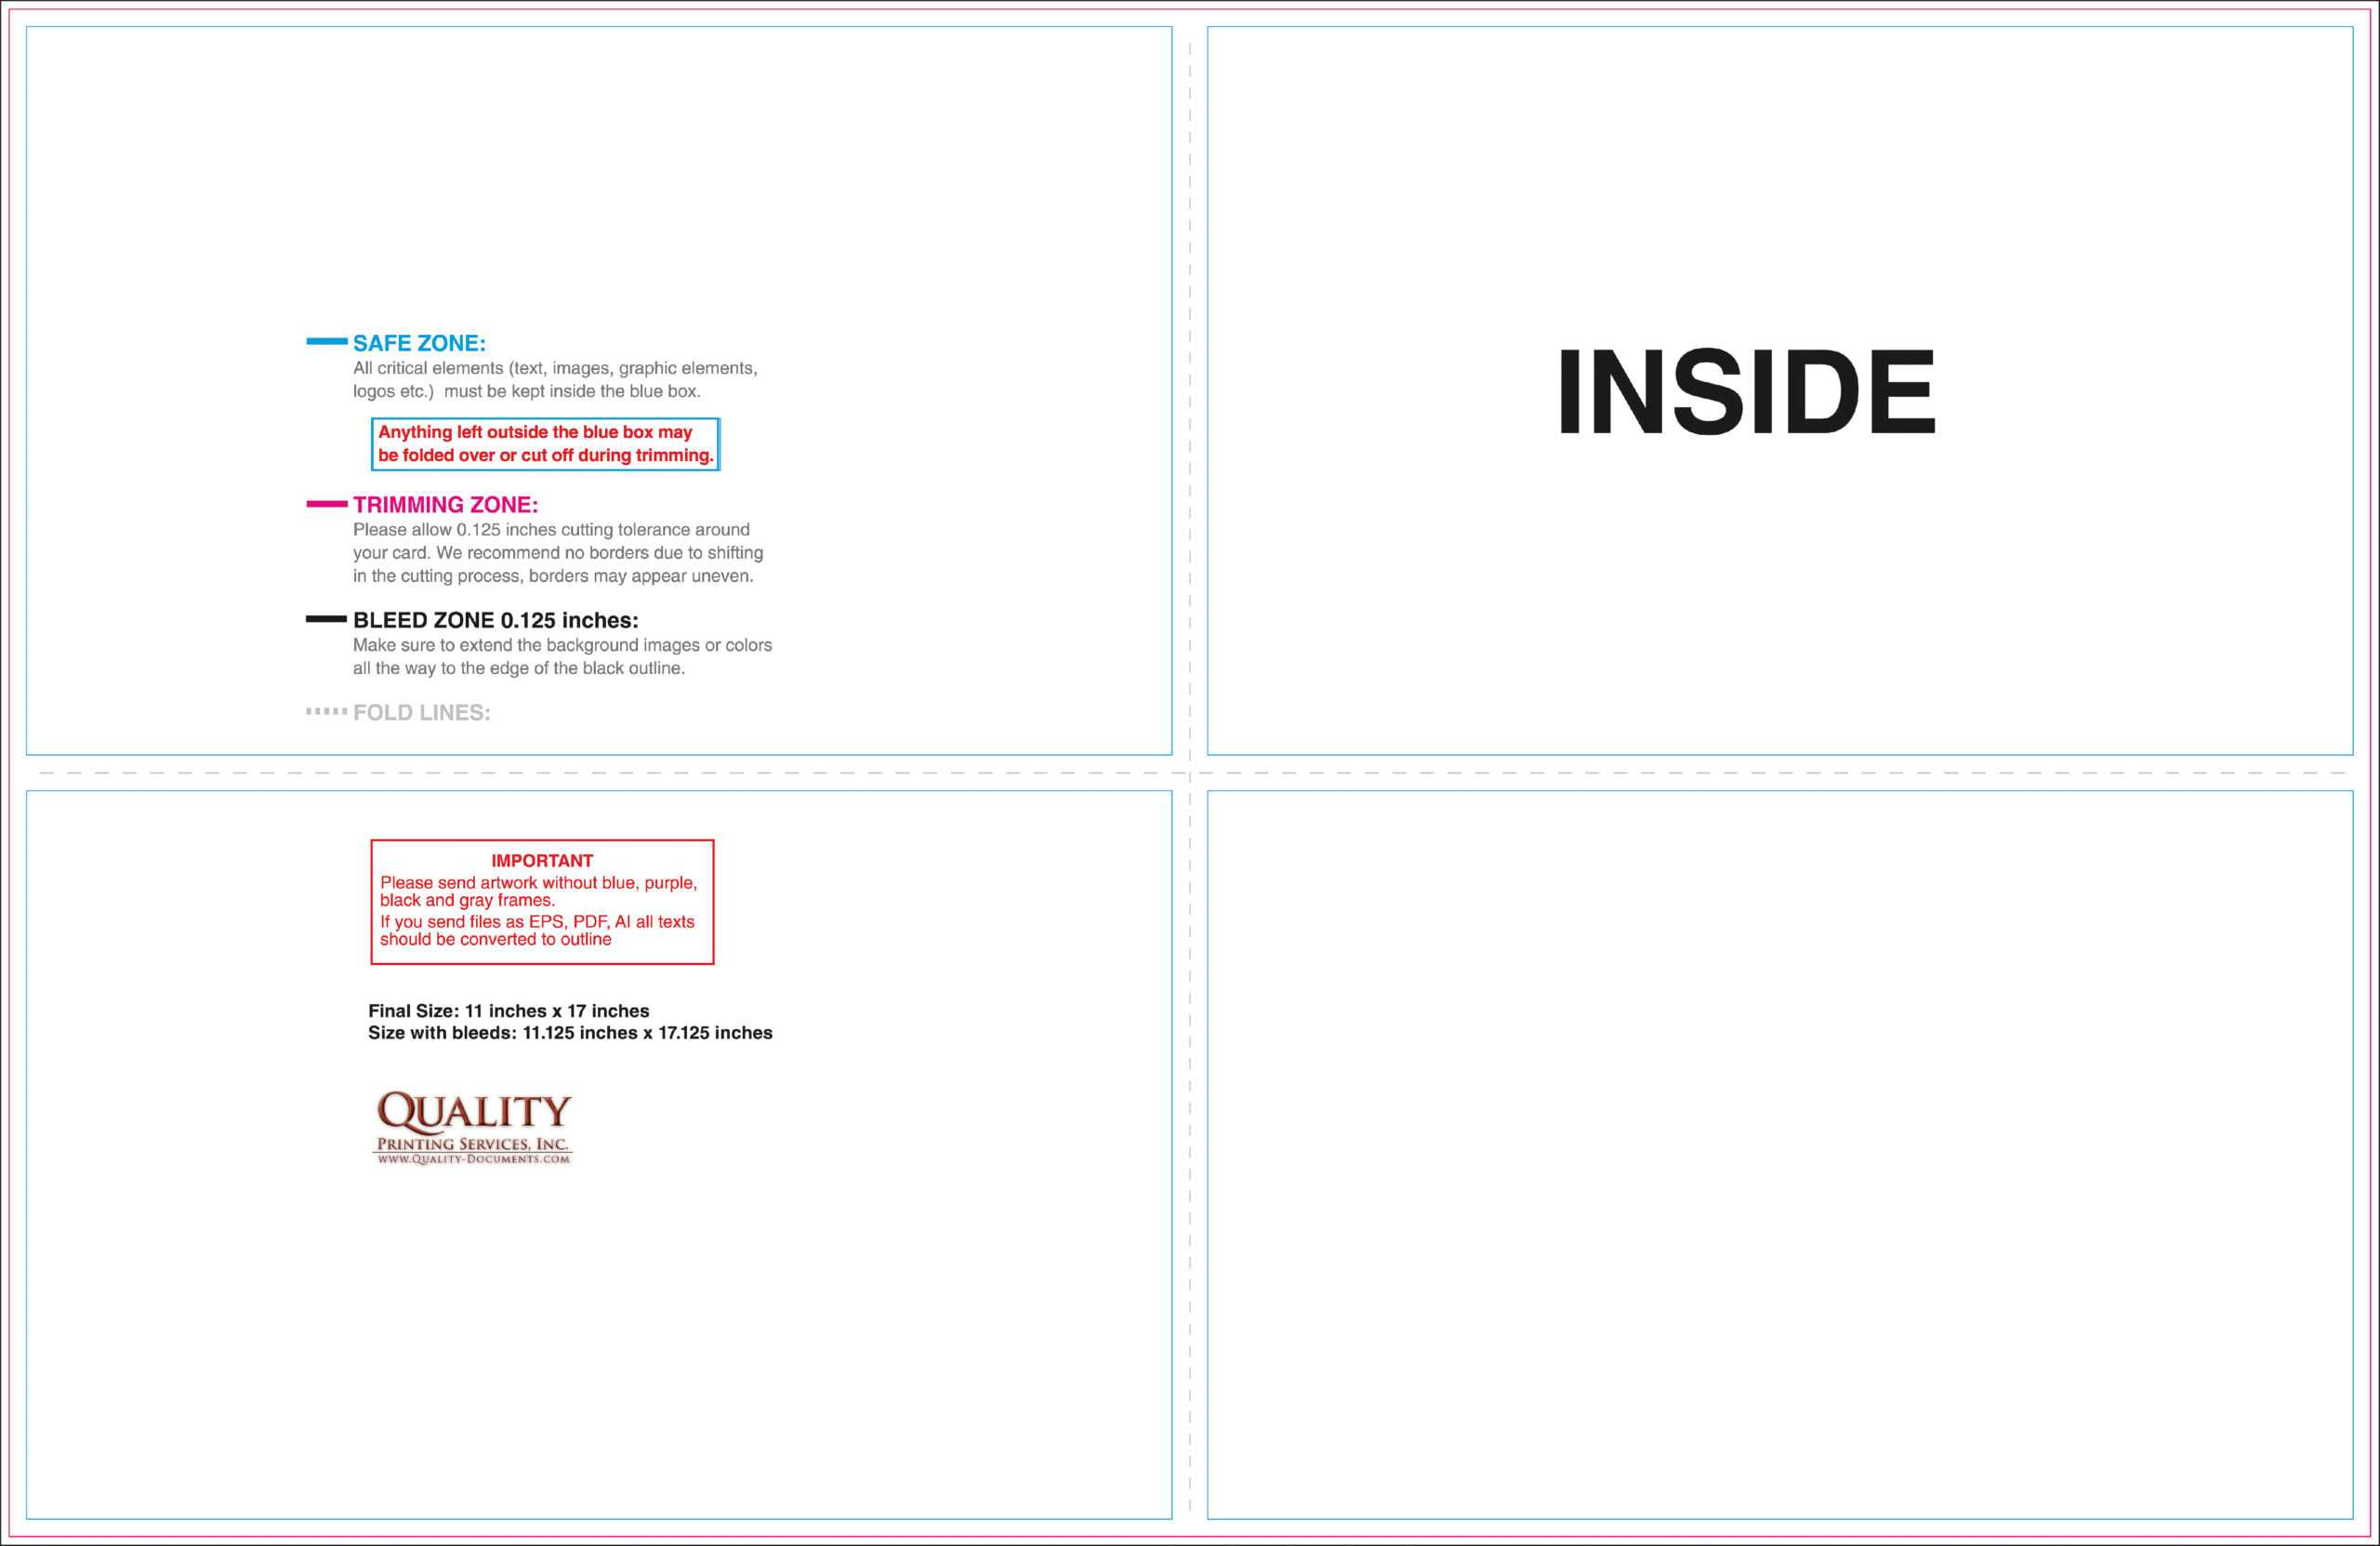 11X17 Brochure Templates With Regard To 11X17 Brochure Template